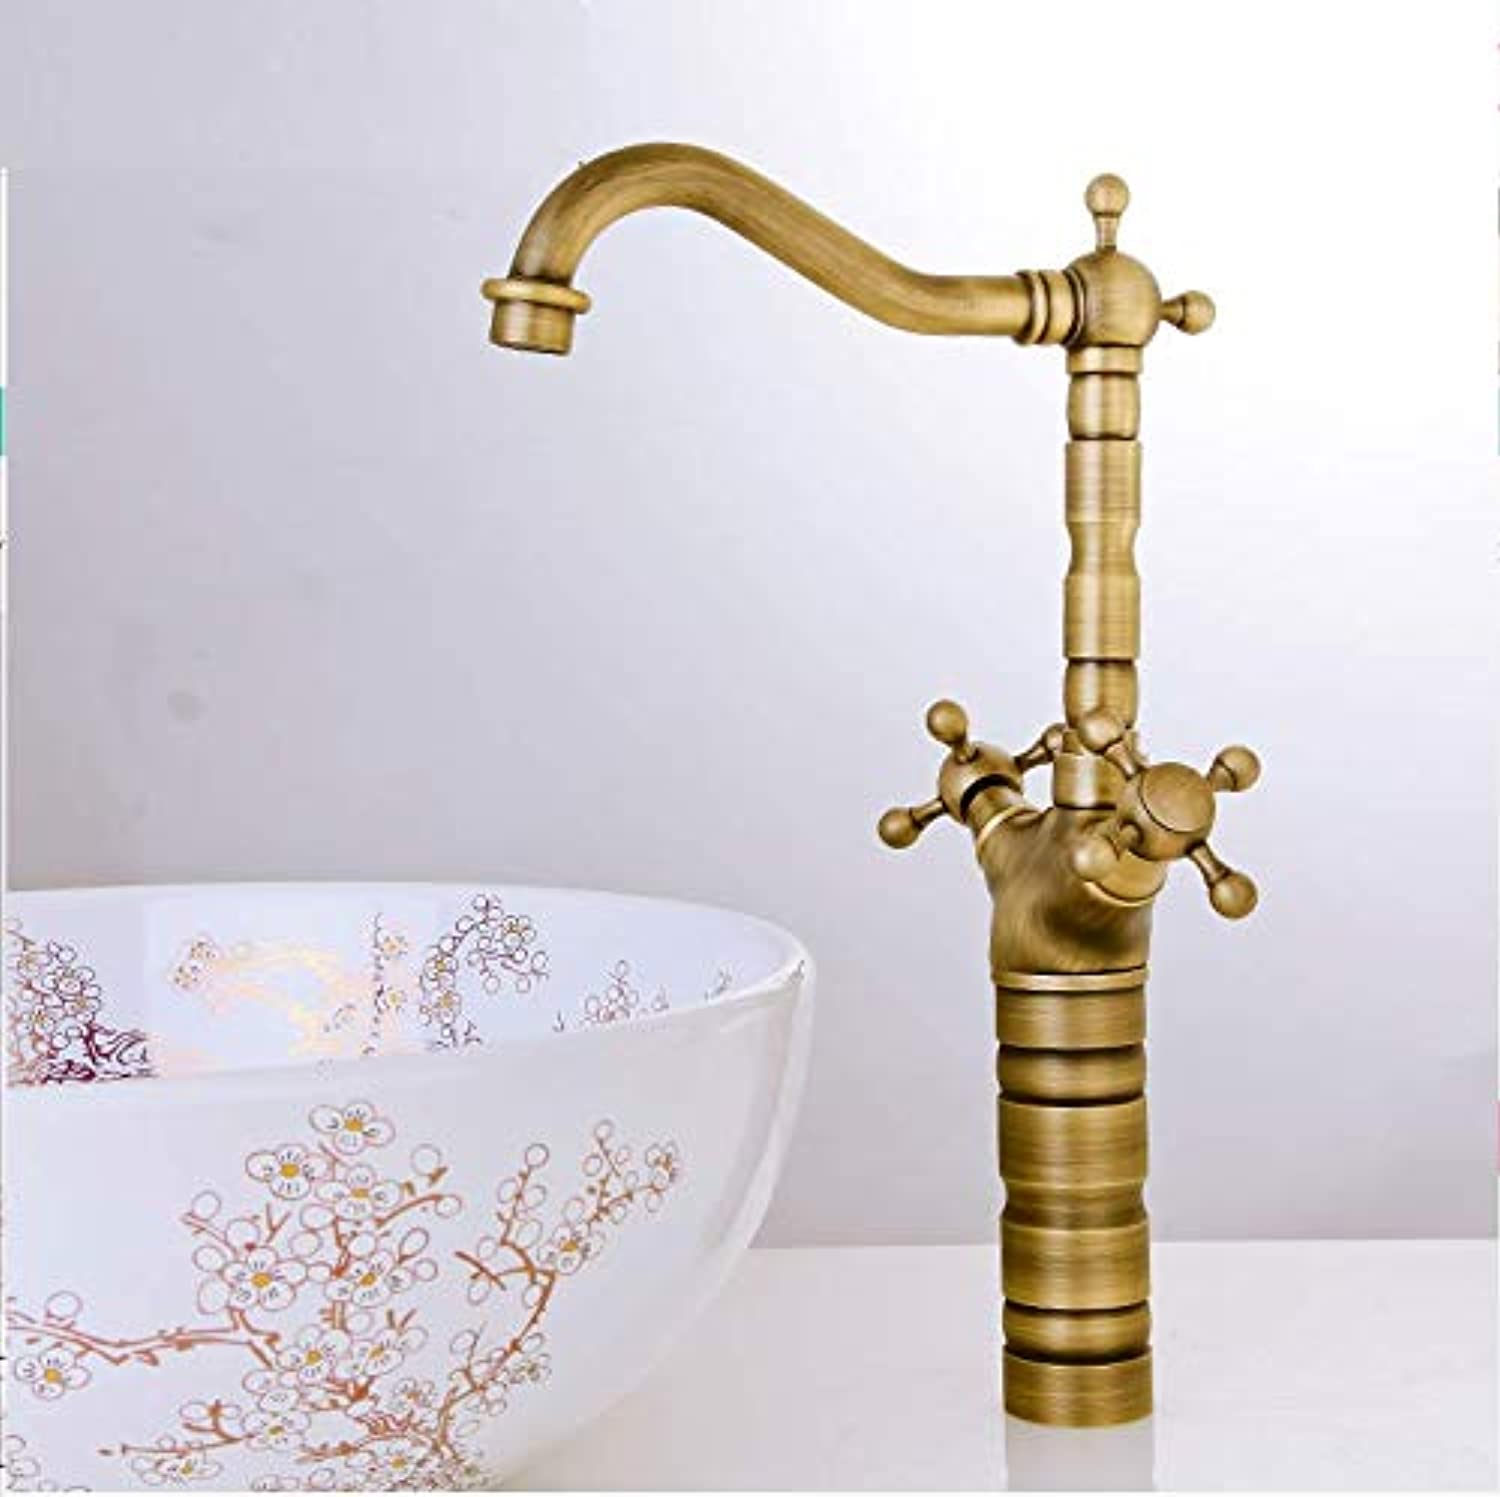 Hot and Cold Water Faucet Copper European Antique Faucet Basin Faucet Basin Faucet Above Counter Basin